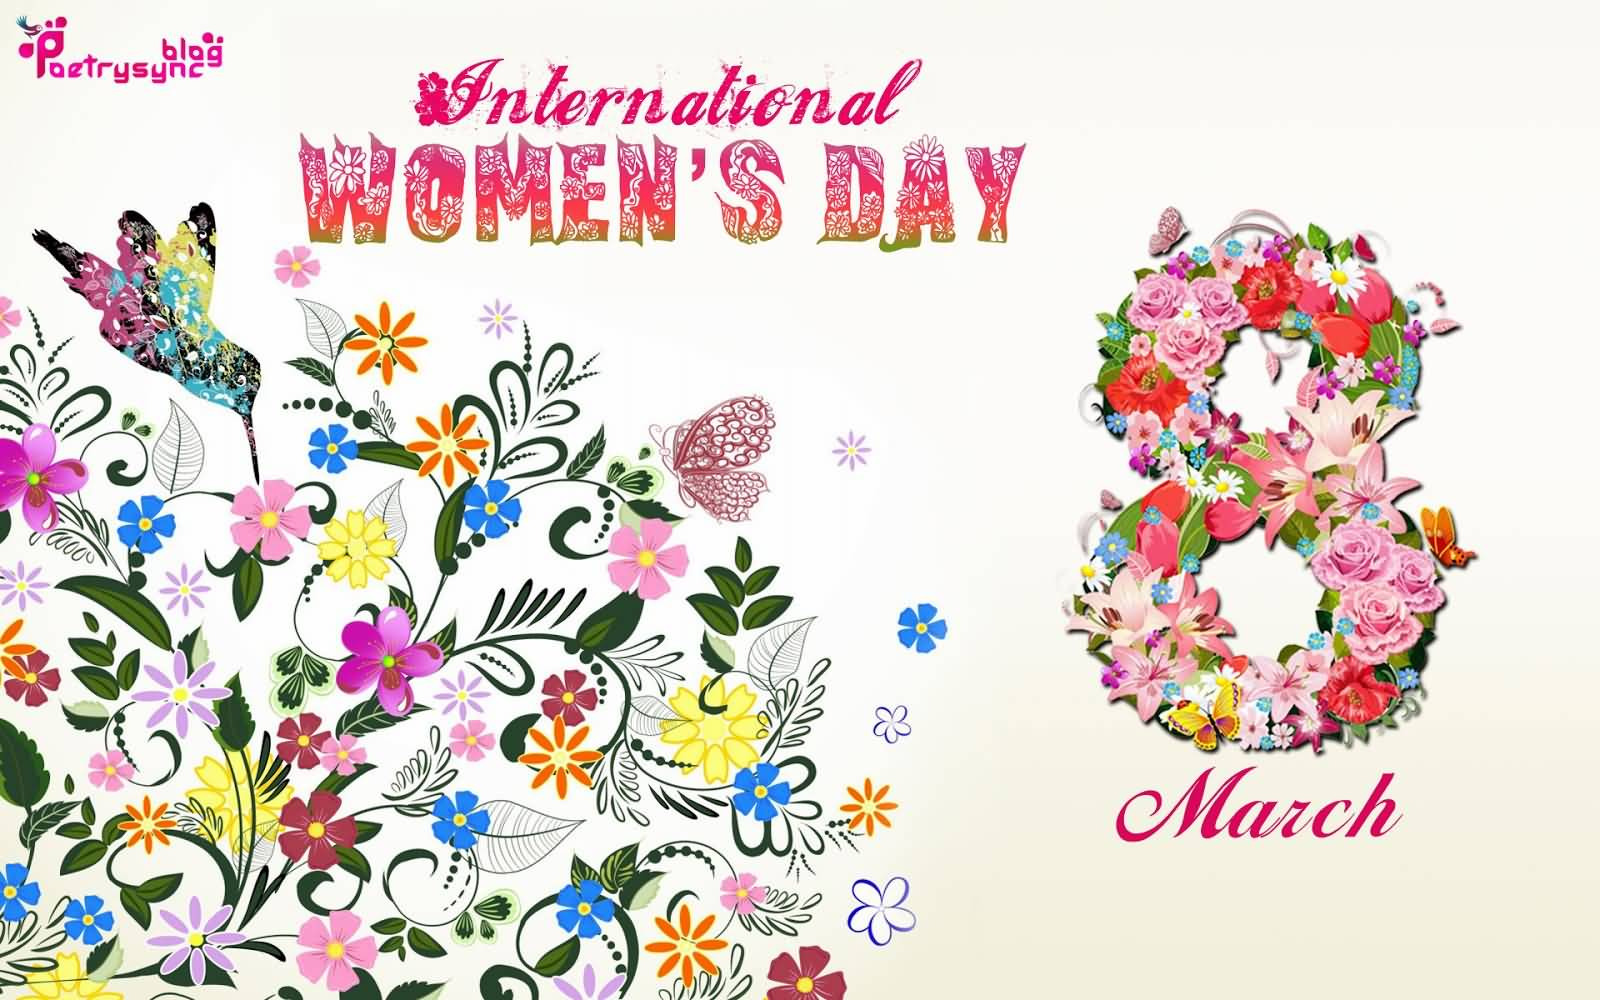 International Womens Day 8 March 2017 Hd Wallpaper